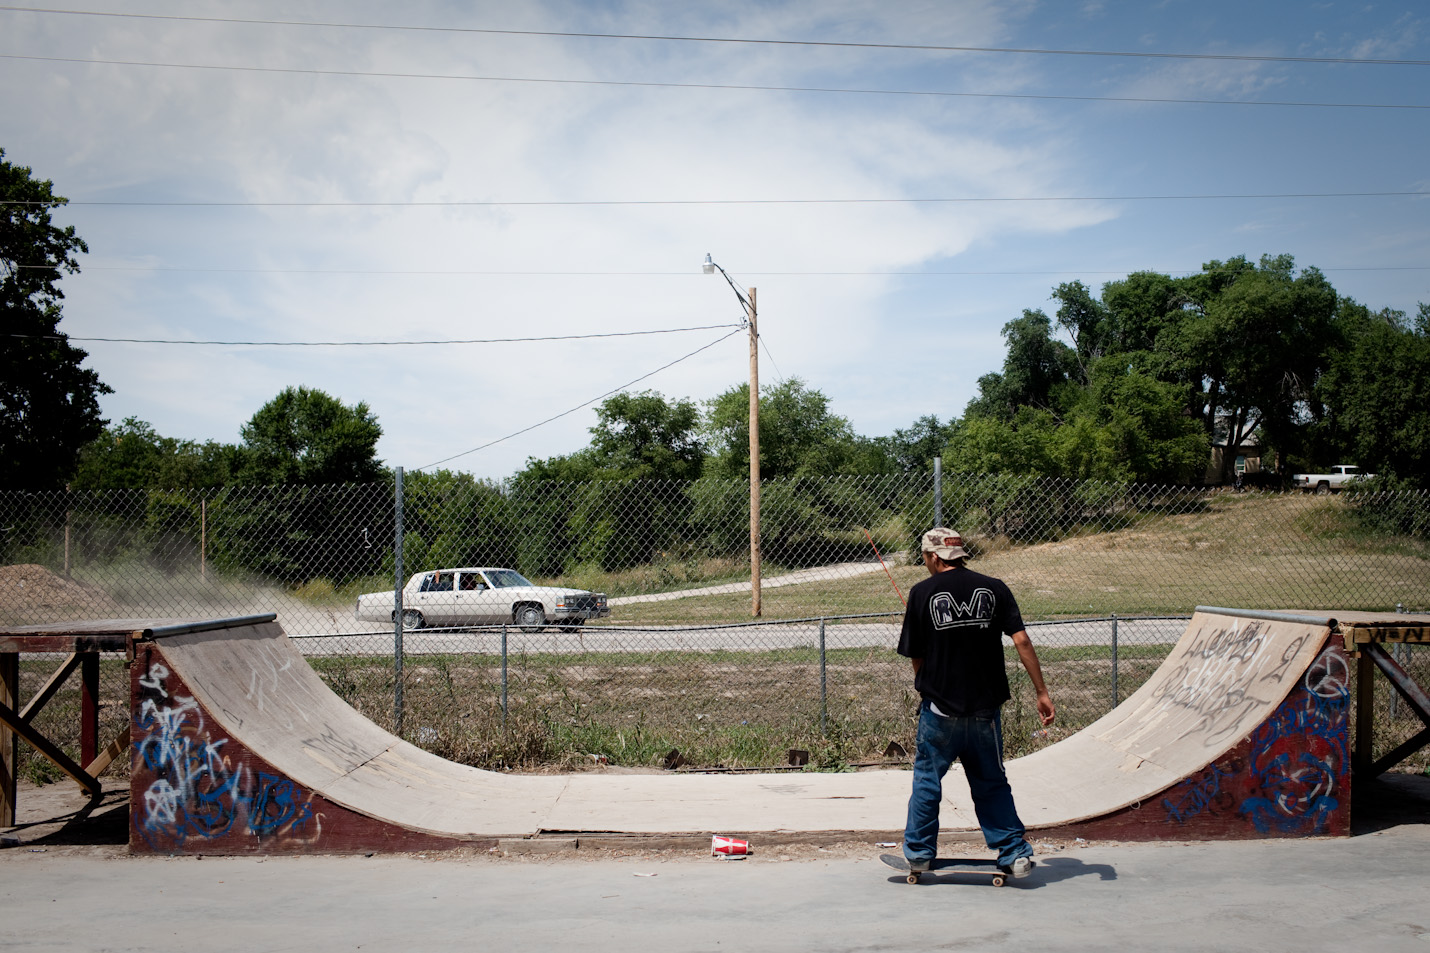 Teens gather at the skate park in the evenings and during the long summer days in Pine Ridge, South Dakota.   Pine Ridge Reservation, located in Shannon County, is considered the poorest county in the United States.  Gang violence, unemployment, and alcoholism are major problems throughout the reservation.